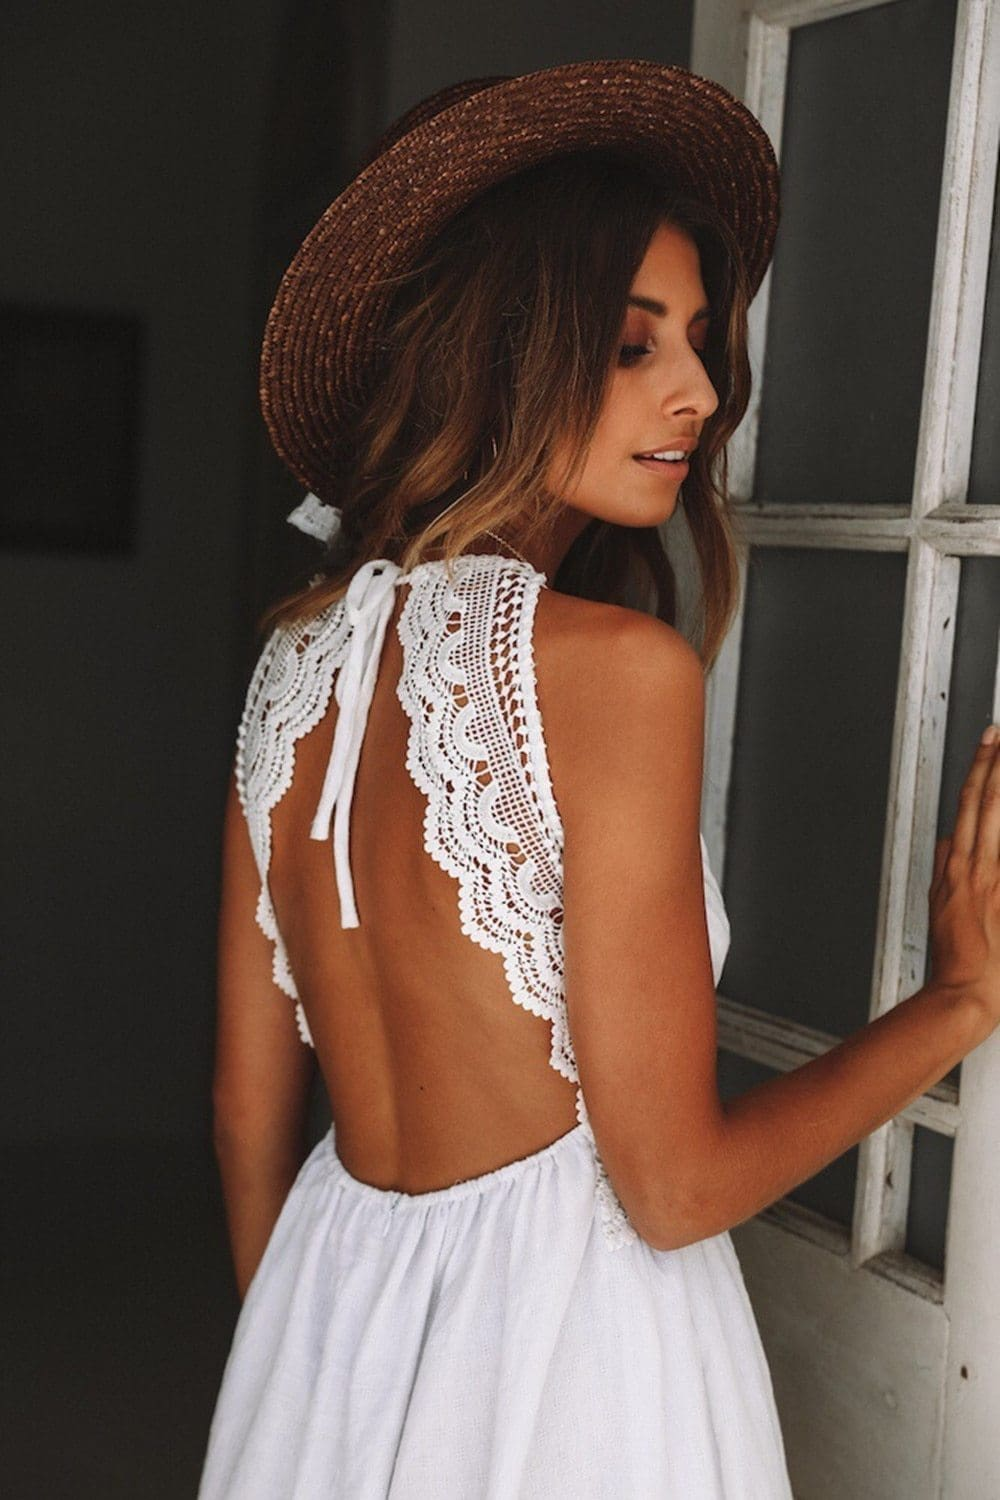 Buy Cheap Boho Vrouwen Jurken Spaghetti Strap Backless Elegante Beach Zonnejurk Online - Hplify